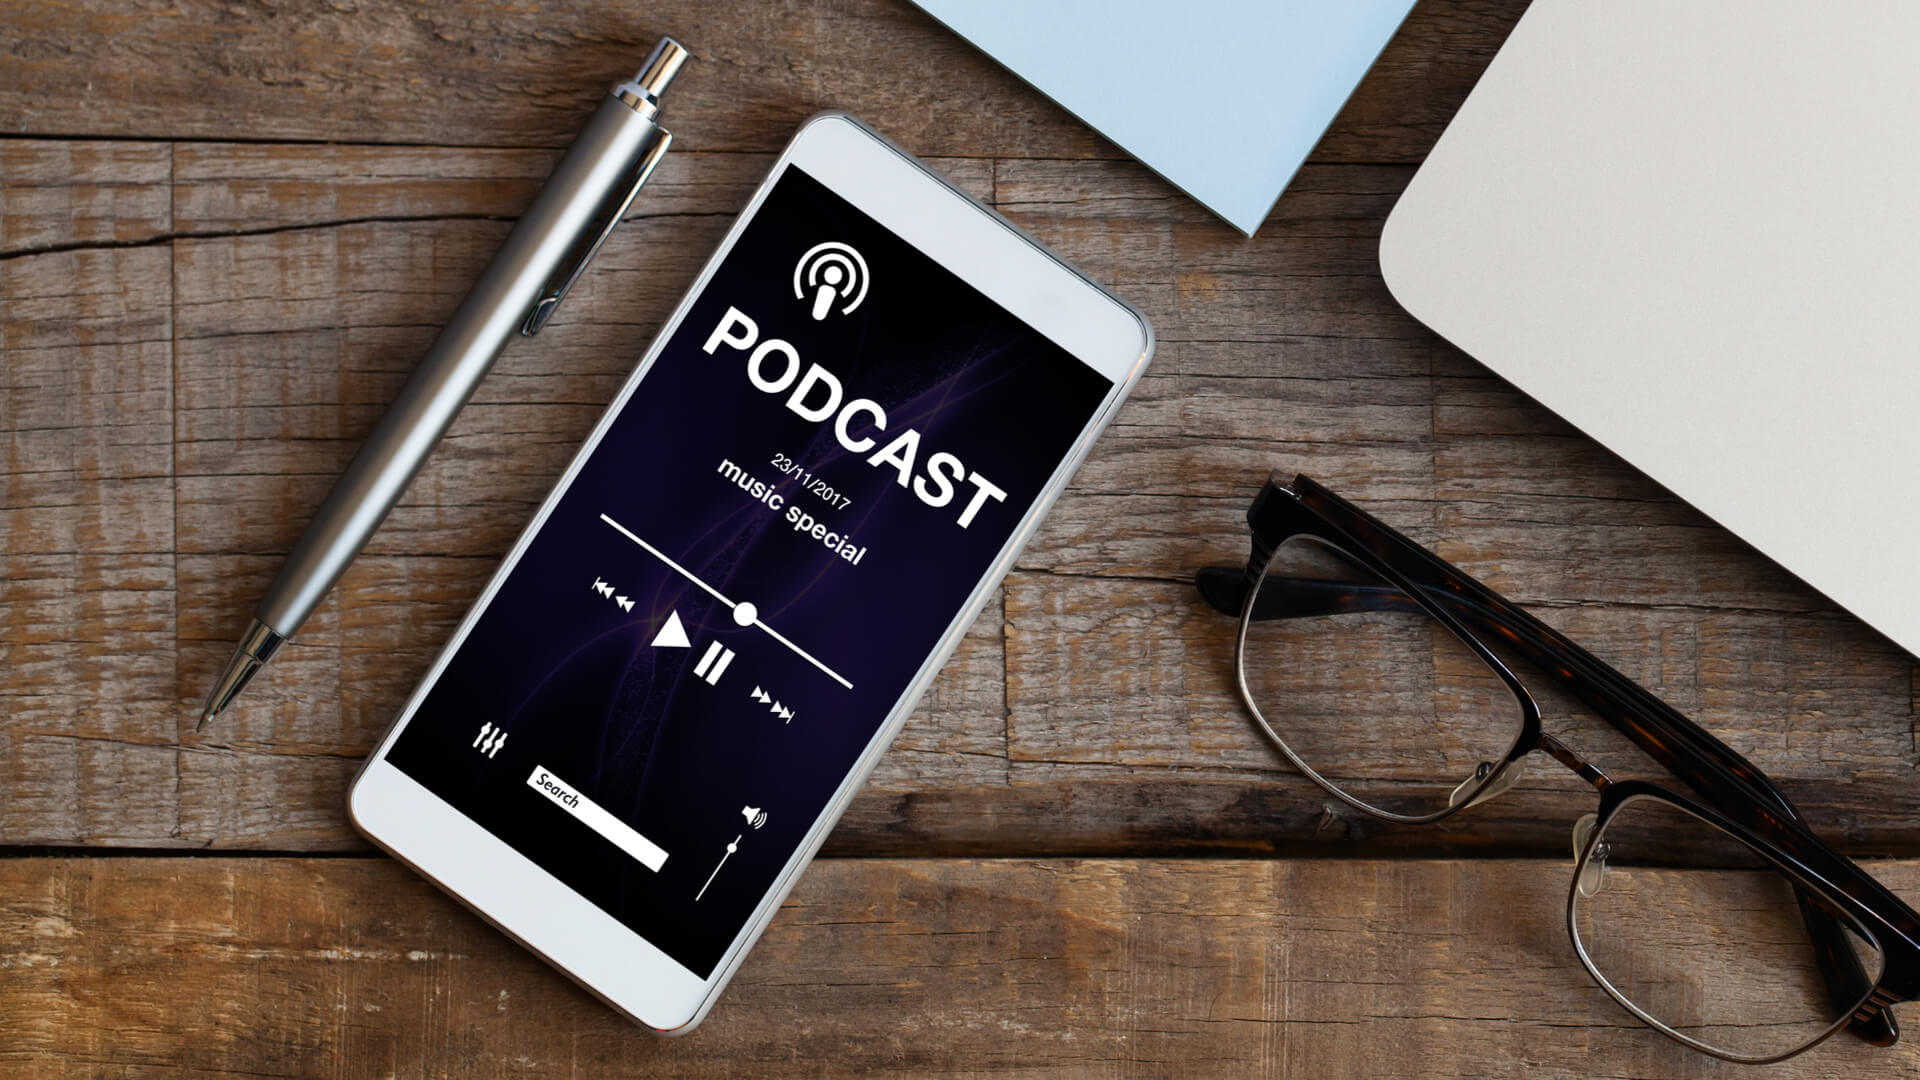 New Nielsen service offers podcast audience insights for advertising